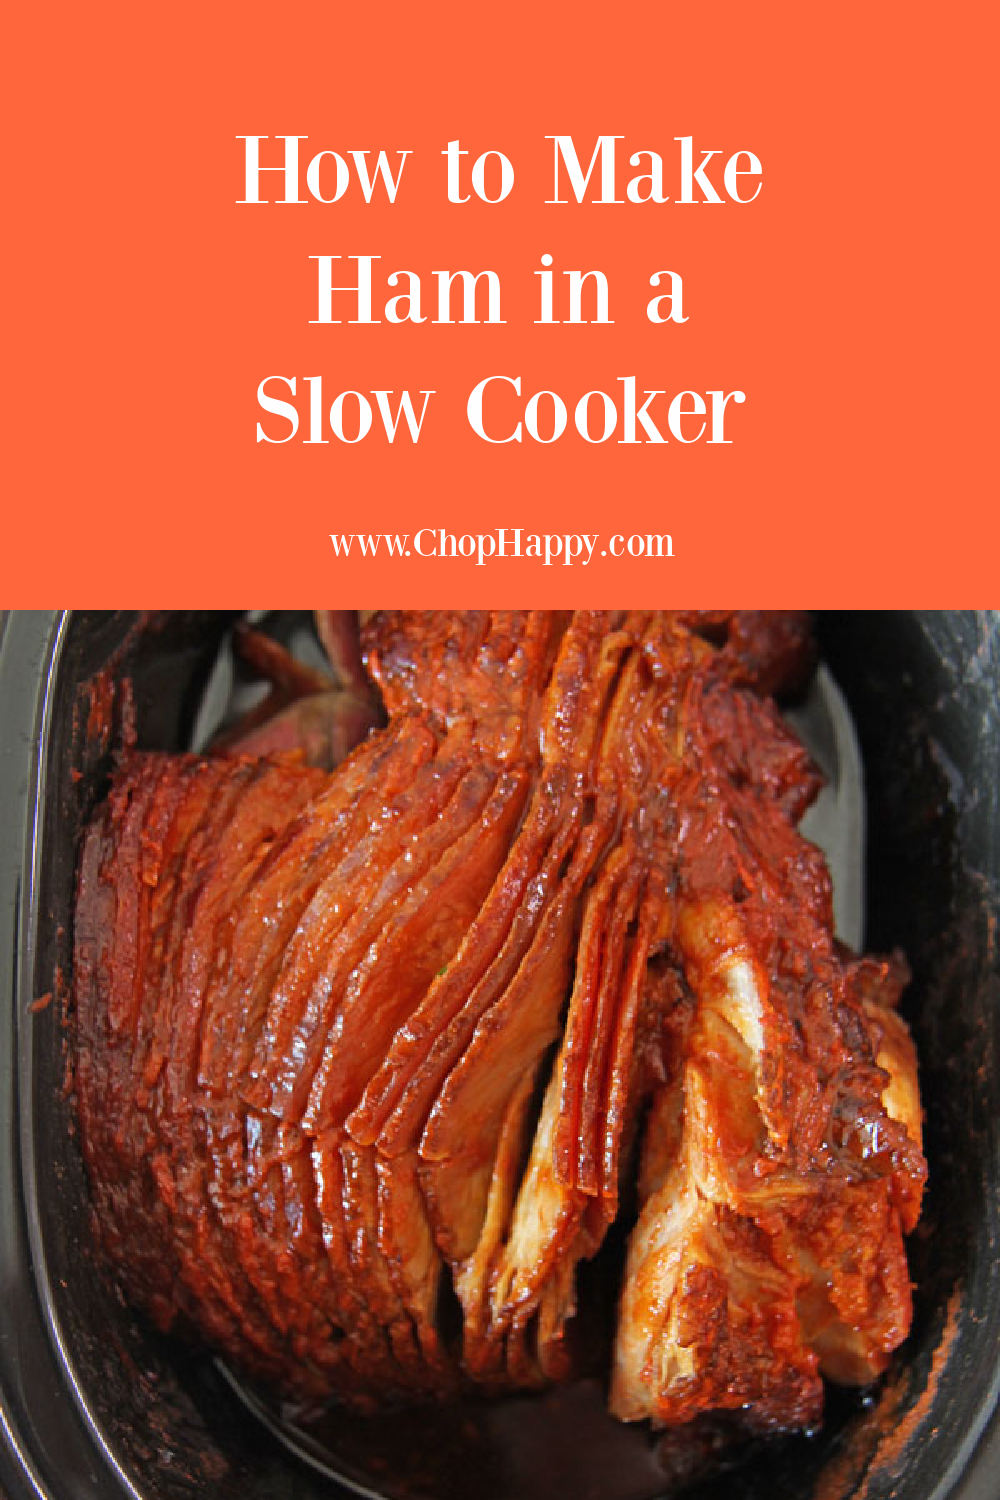 How To Make Ham in a Slow Cooker. With a serial ham, glaze, and slow cooker dinner is easy. I use honey and spicy sauce to glaze the ham for the holidays, Christmas dinner, Easter, or weeknight dinner. Happy Slow Cooker Cooking! #hamrecipes #slowcookerrecipes